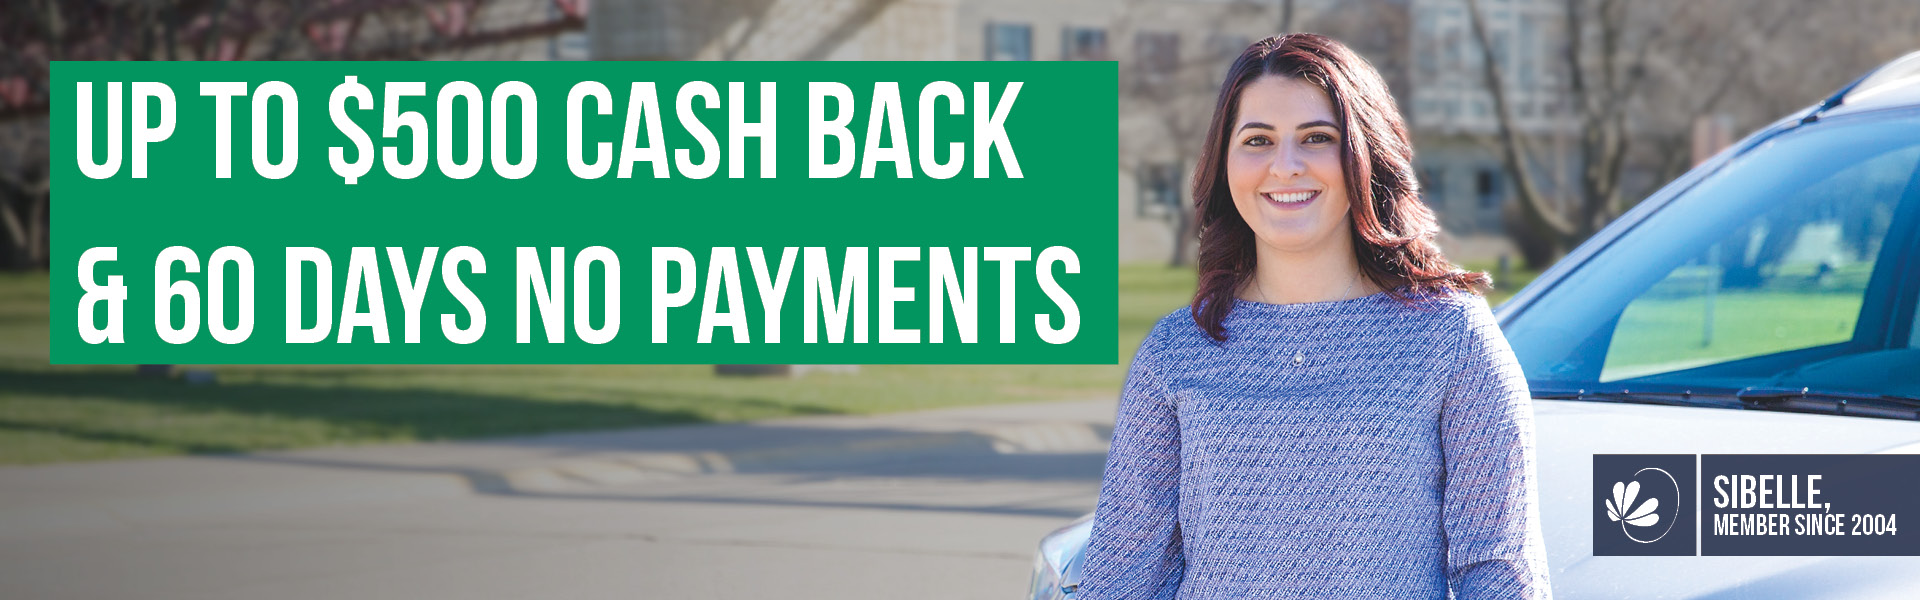 Up to $500 Cash Back and 60 Days No Payments